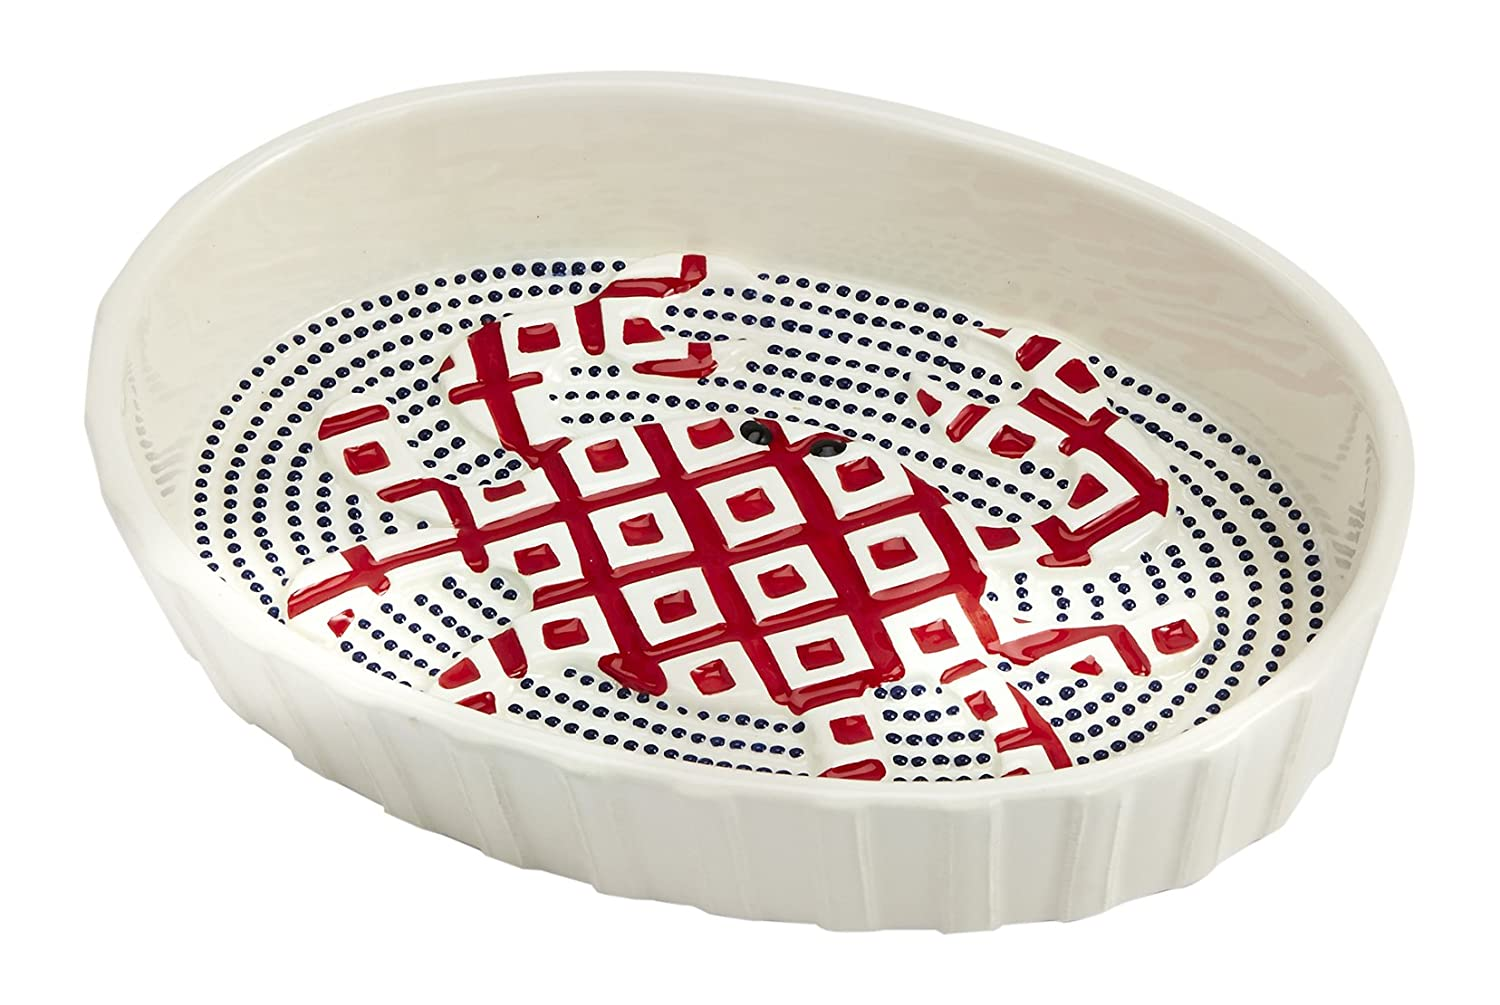 Christmas Tablescape Décor - Mud Pie small hand-painted red crab textured ceramic oval oven baker